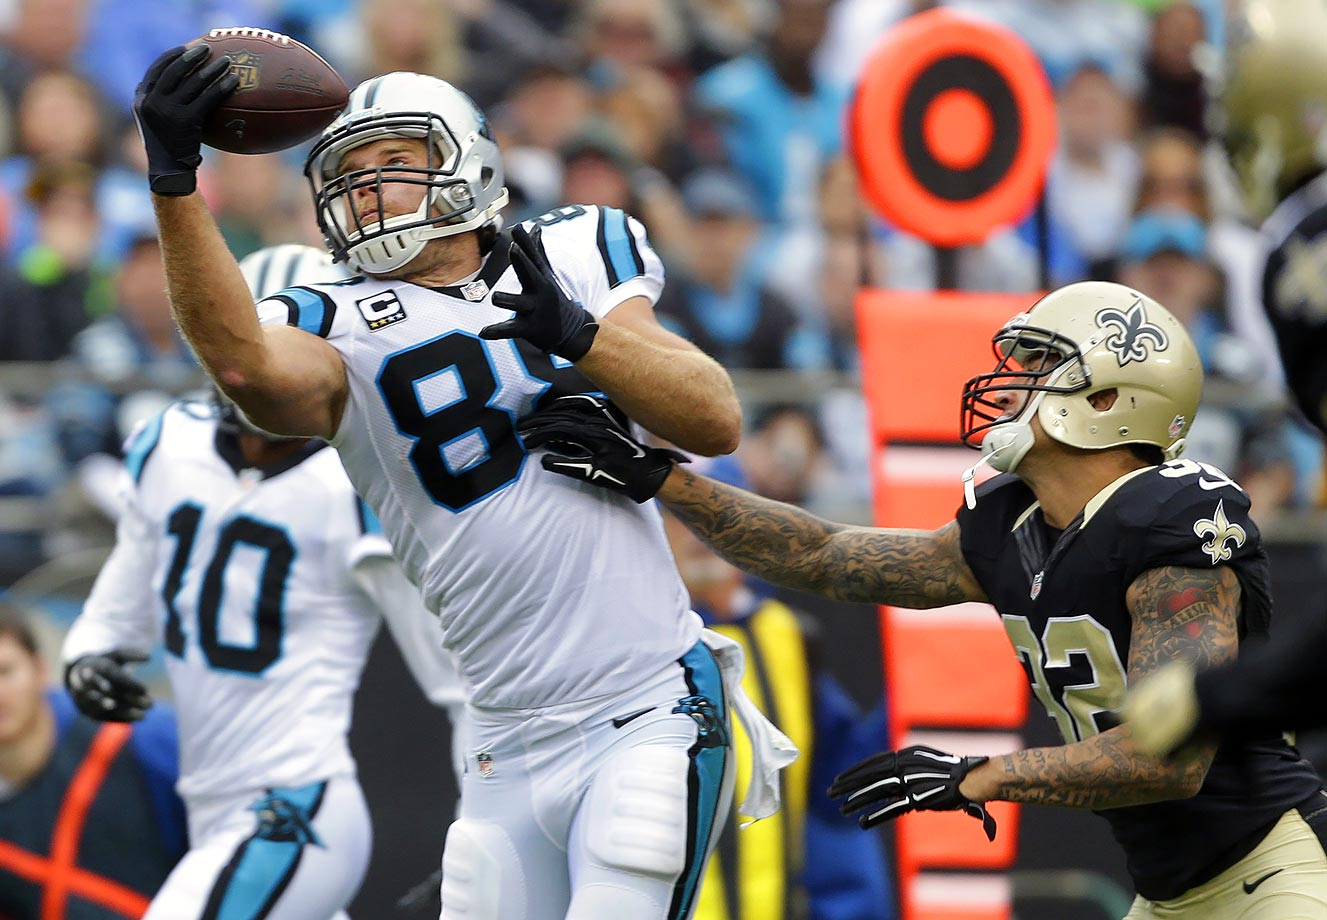 In their first division battle of the young season, Carolina hosted the New Orleans Saints in what turned out to be another close game. New Orleans jumped out to a 10-0 lead early in the second quarter, Carolina's biggest deficit during the season so far. The Panthers came back, led by Newton and tight end Greg Olsen, who caught eight passes for 134 yards and two touchdowns. Newton threw for 315 total yards and added 33 yards and a touchdown on the ground. The Panthers ended up winning 27-22.